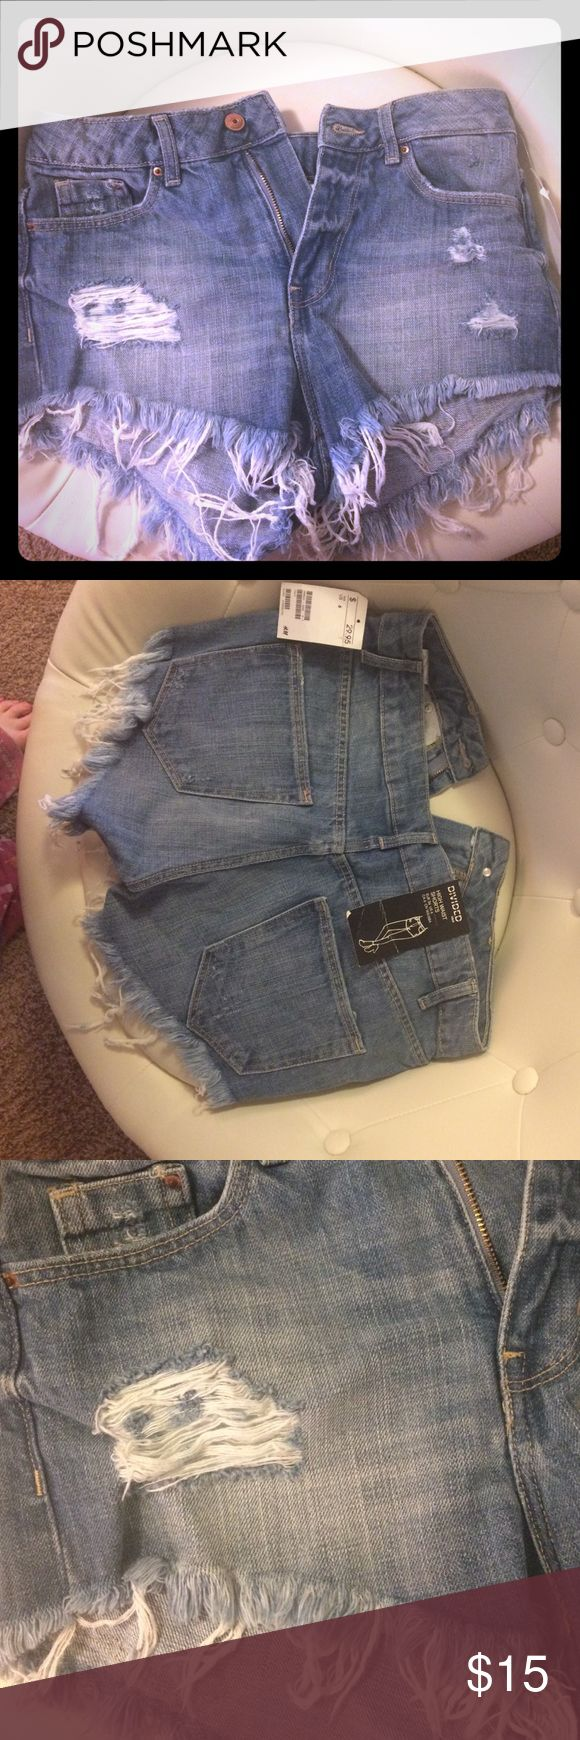 H & M high waist shorts H & M high waisted denim shorts with fraying at bottom& torn look in front, new with tags, size 6 Shorts Jean Shorts